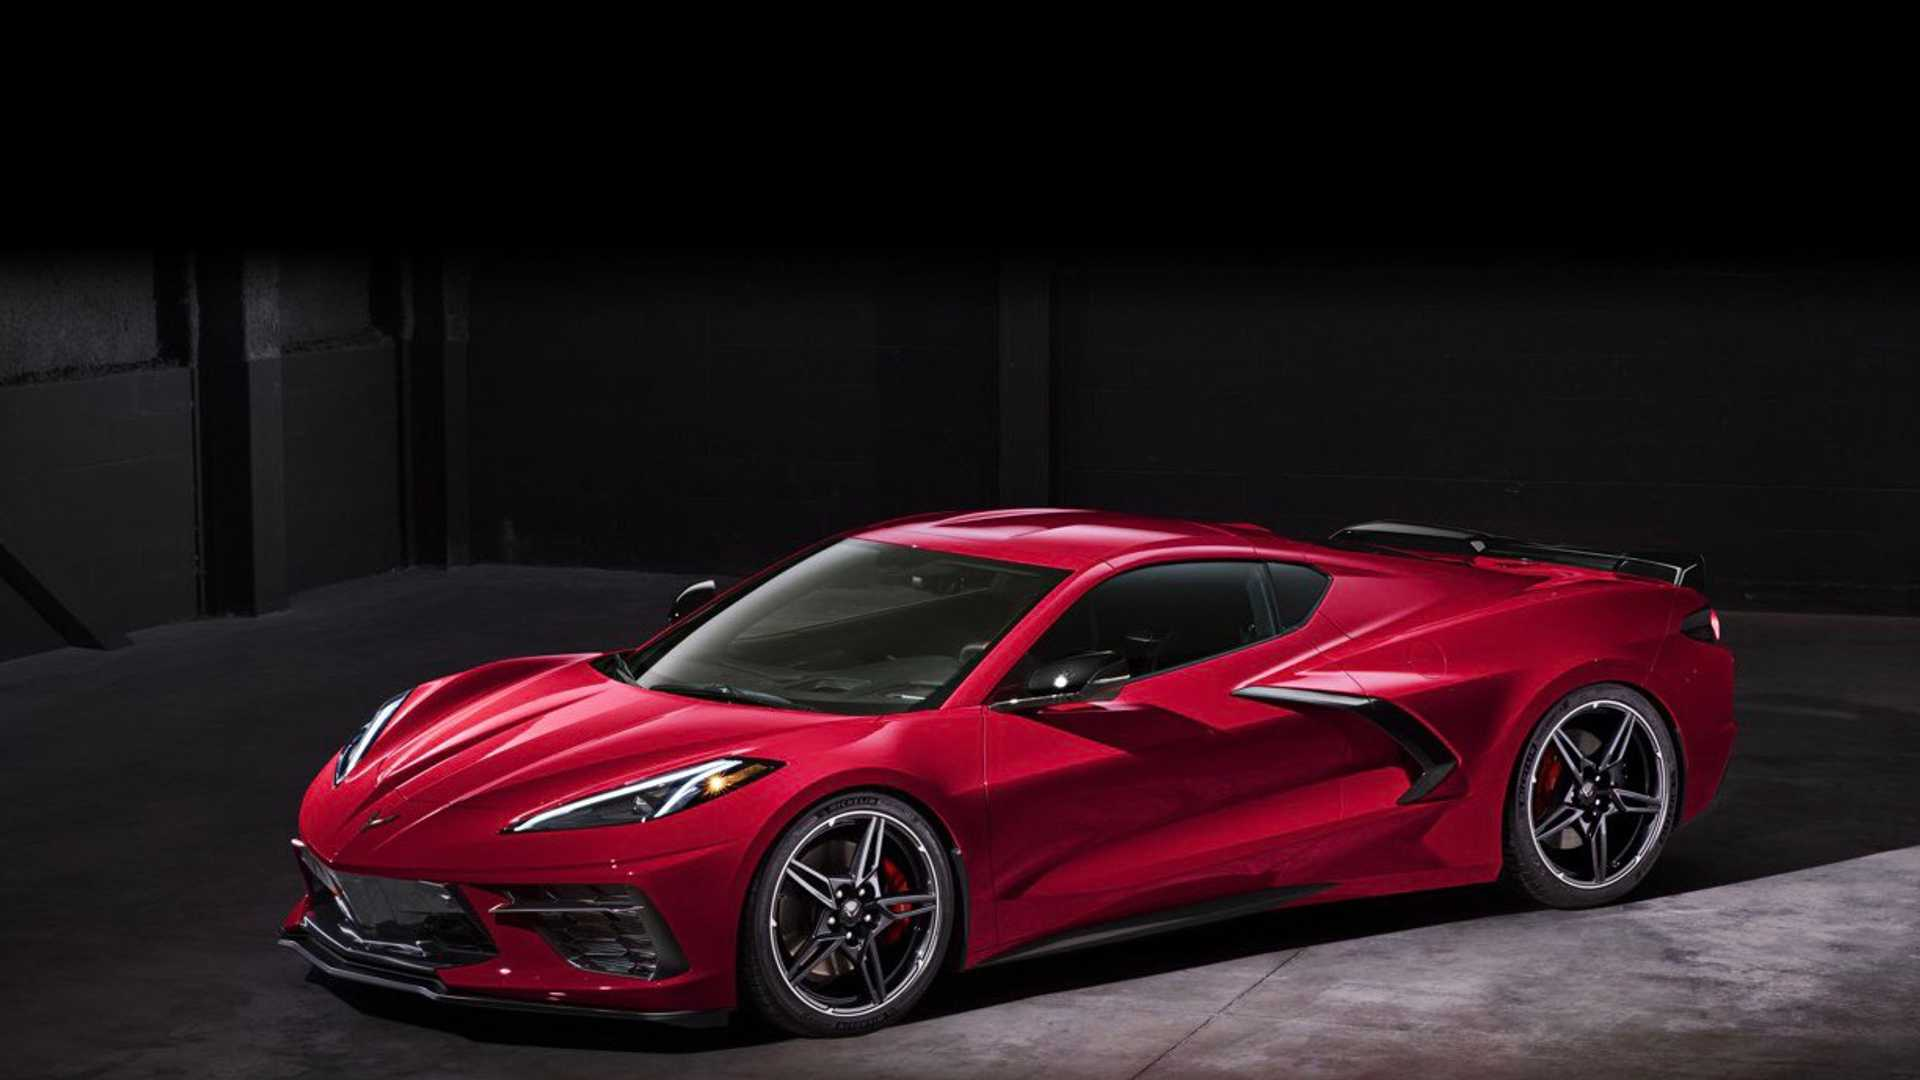 2020 Chevrolet Corvette C8 Stringray